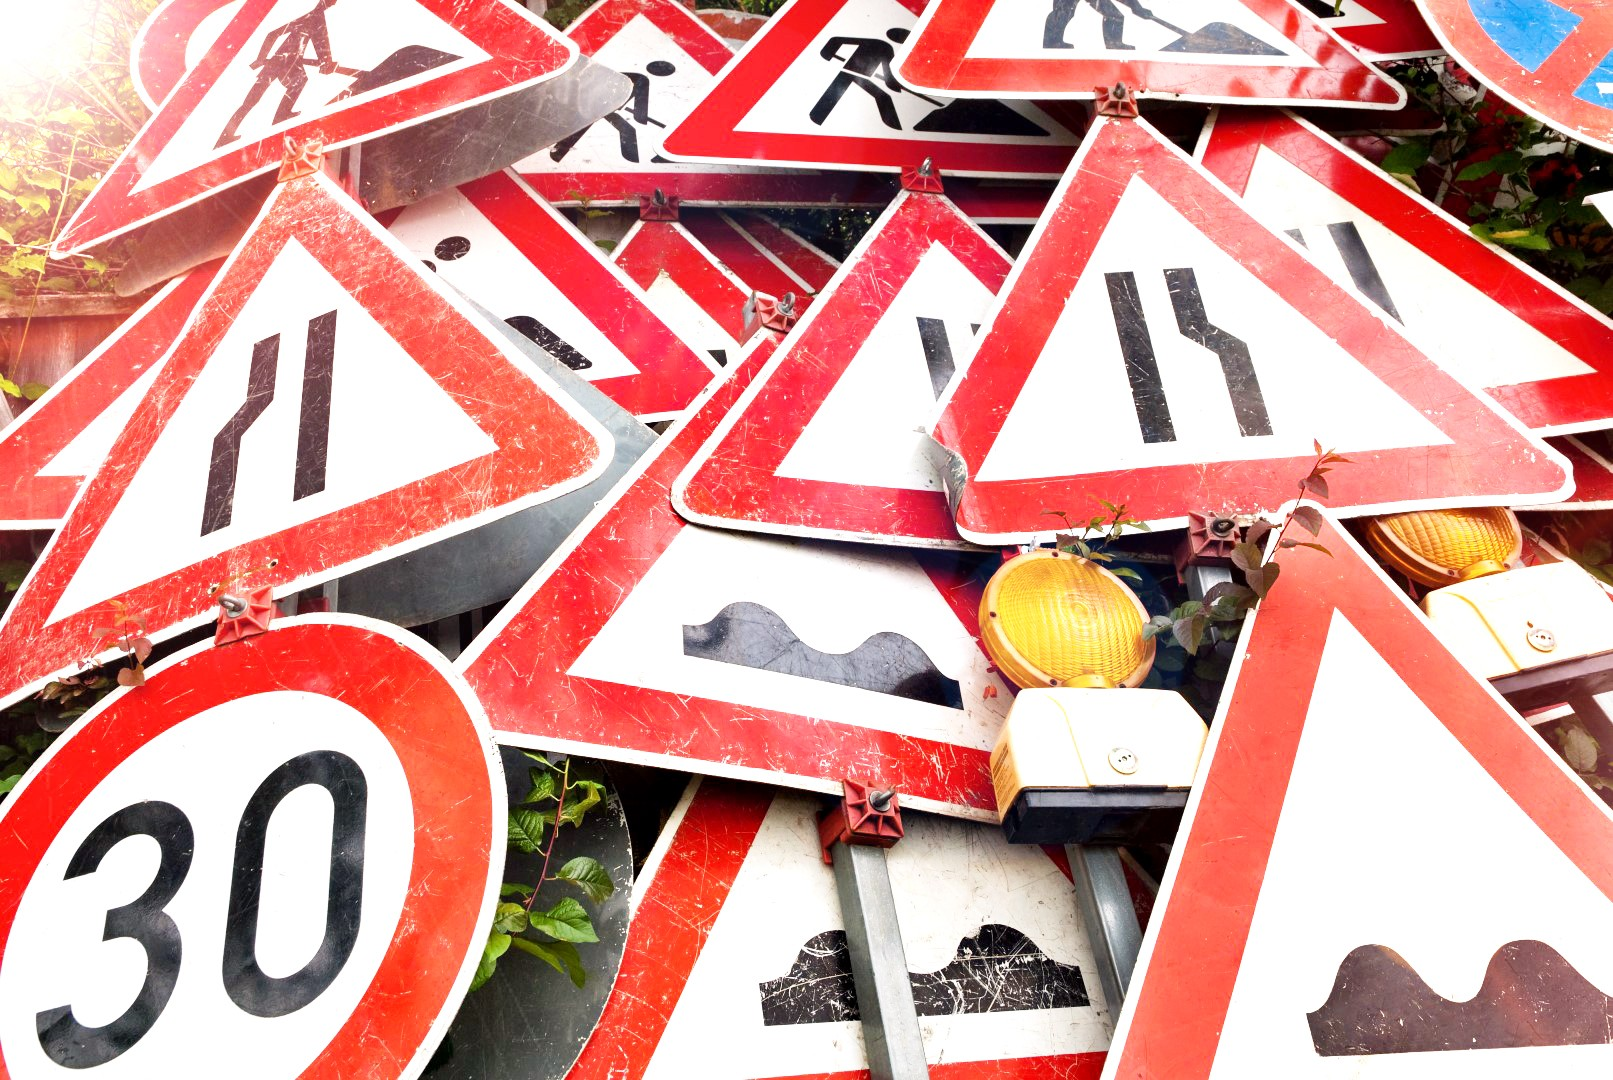 Pile of traffic signs